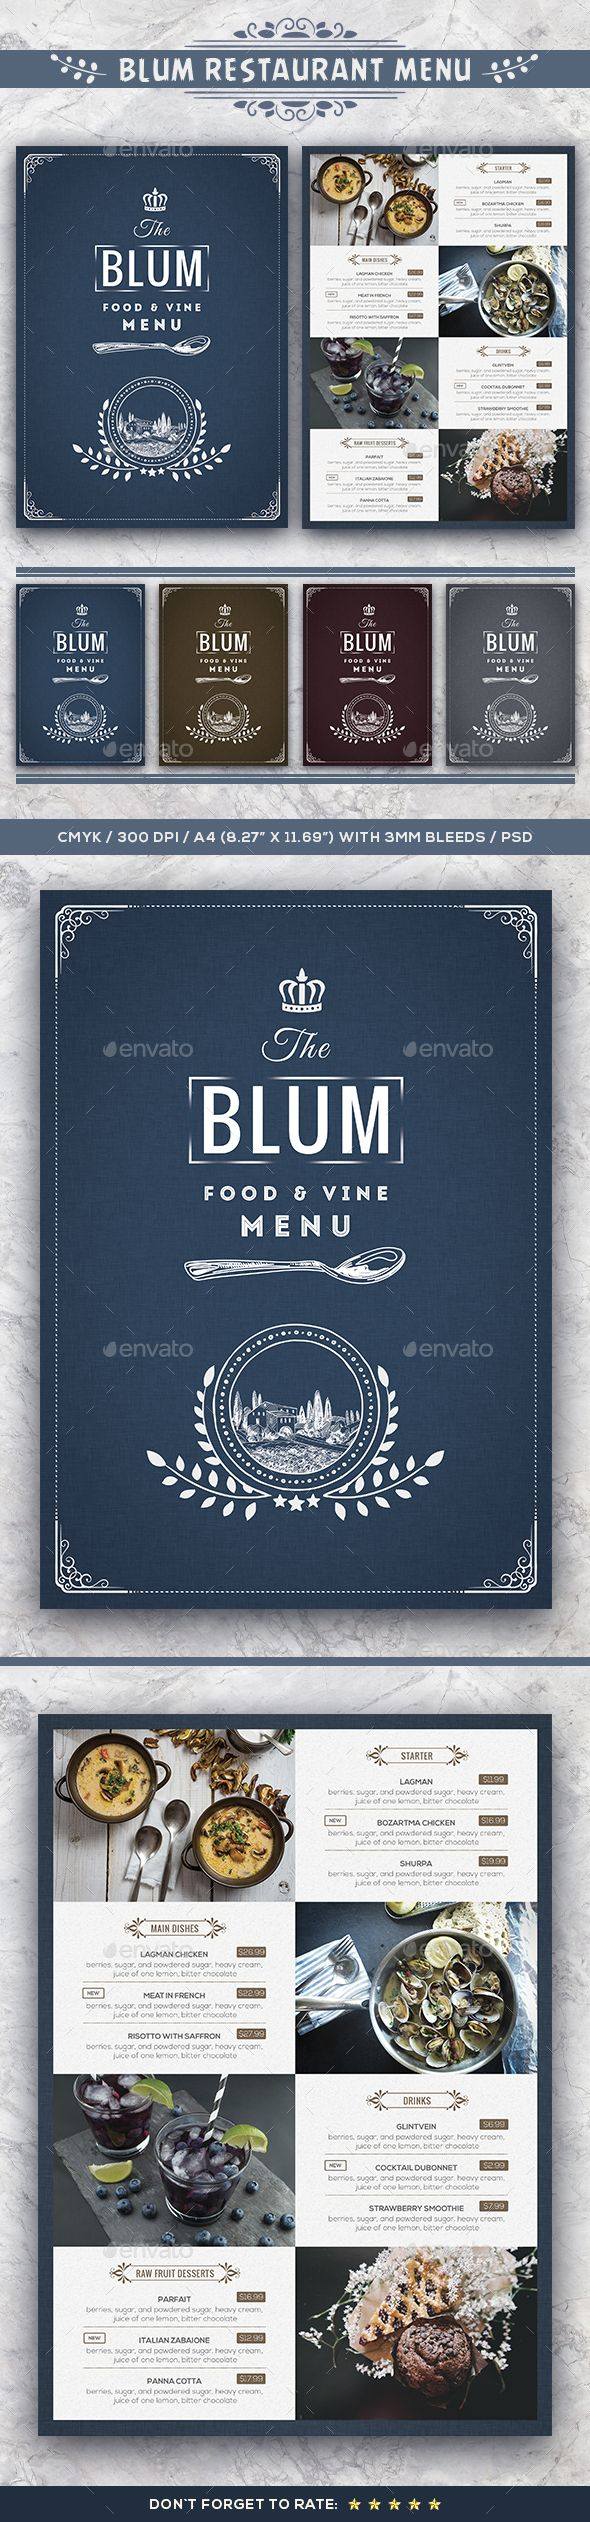 Blum Restaurant Menu Template PSD